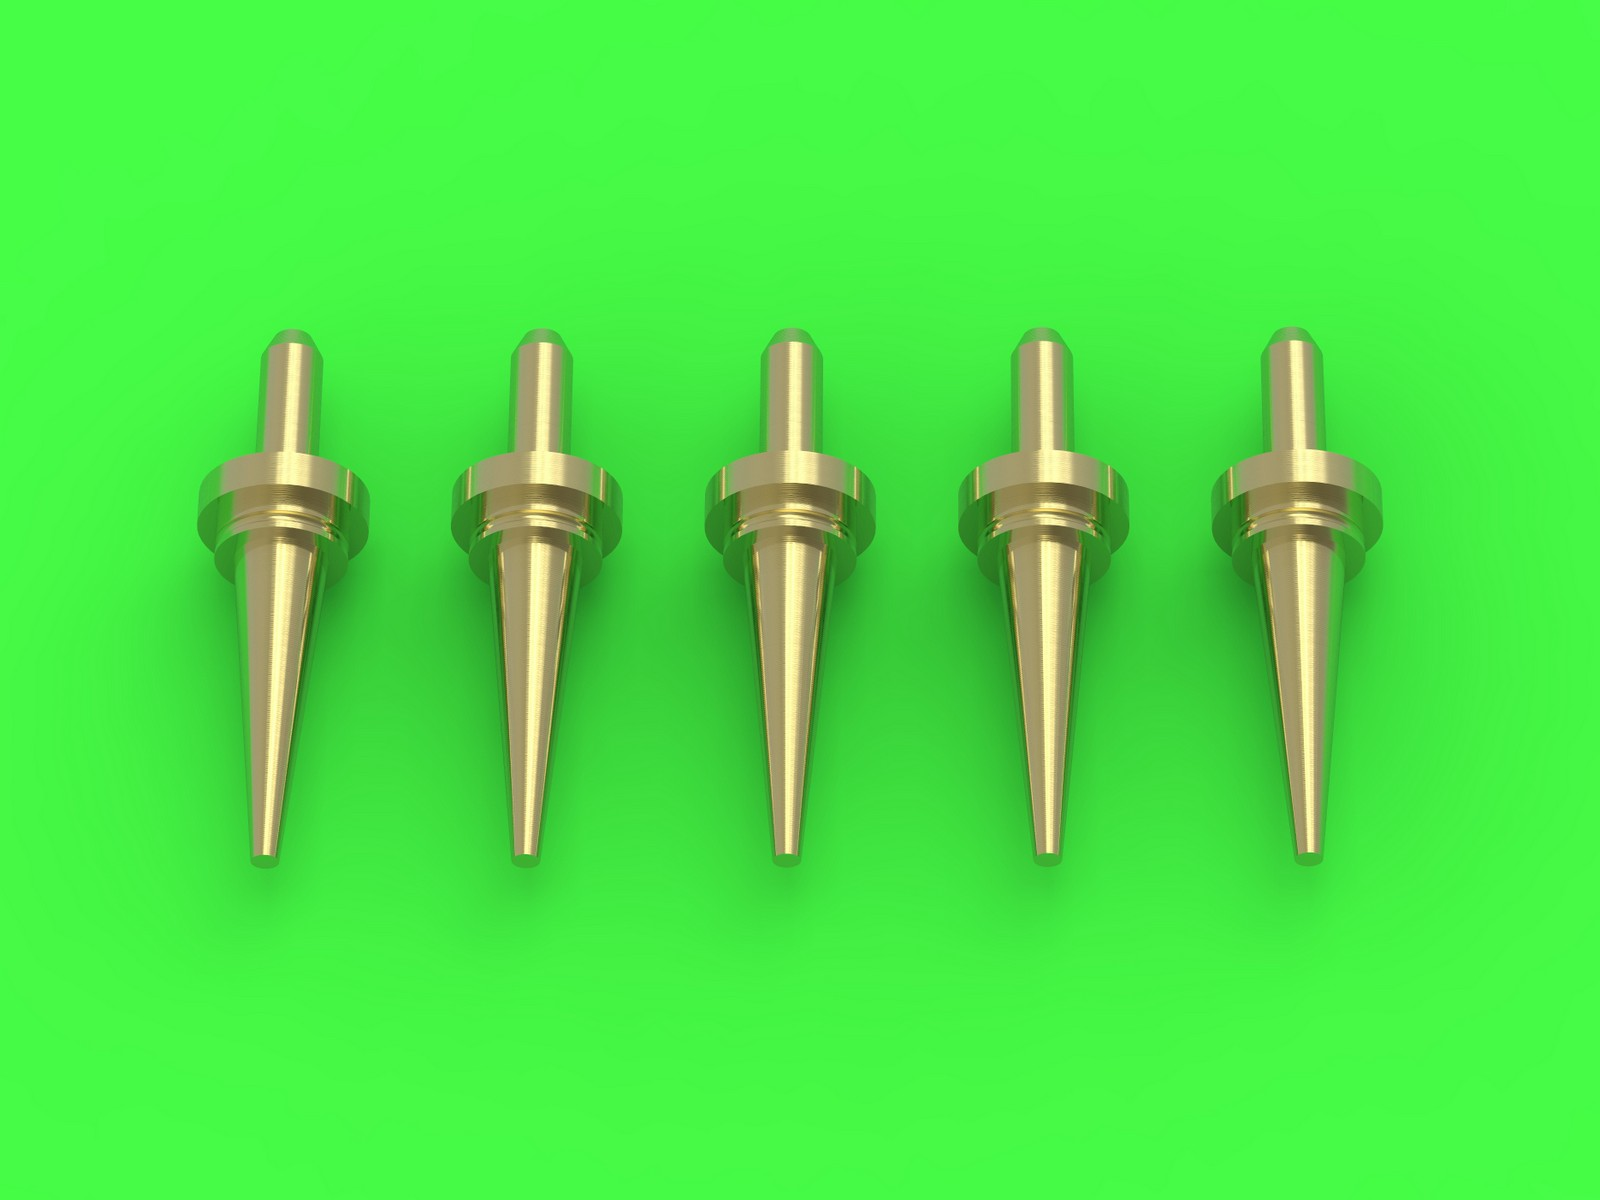 32101 Angle Of Attack probes - U.S. type (x 5 pcs)